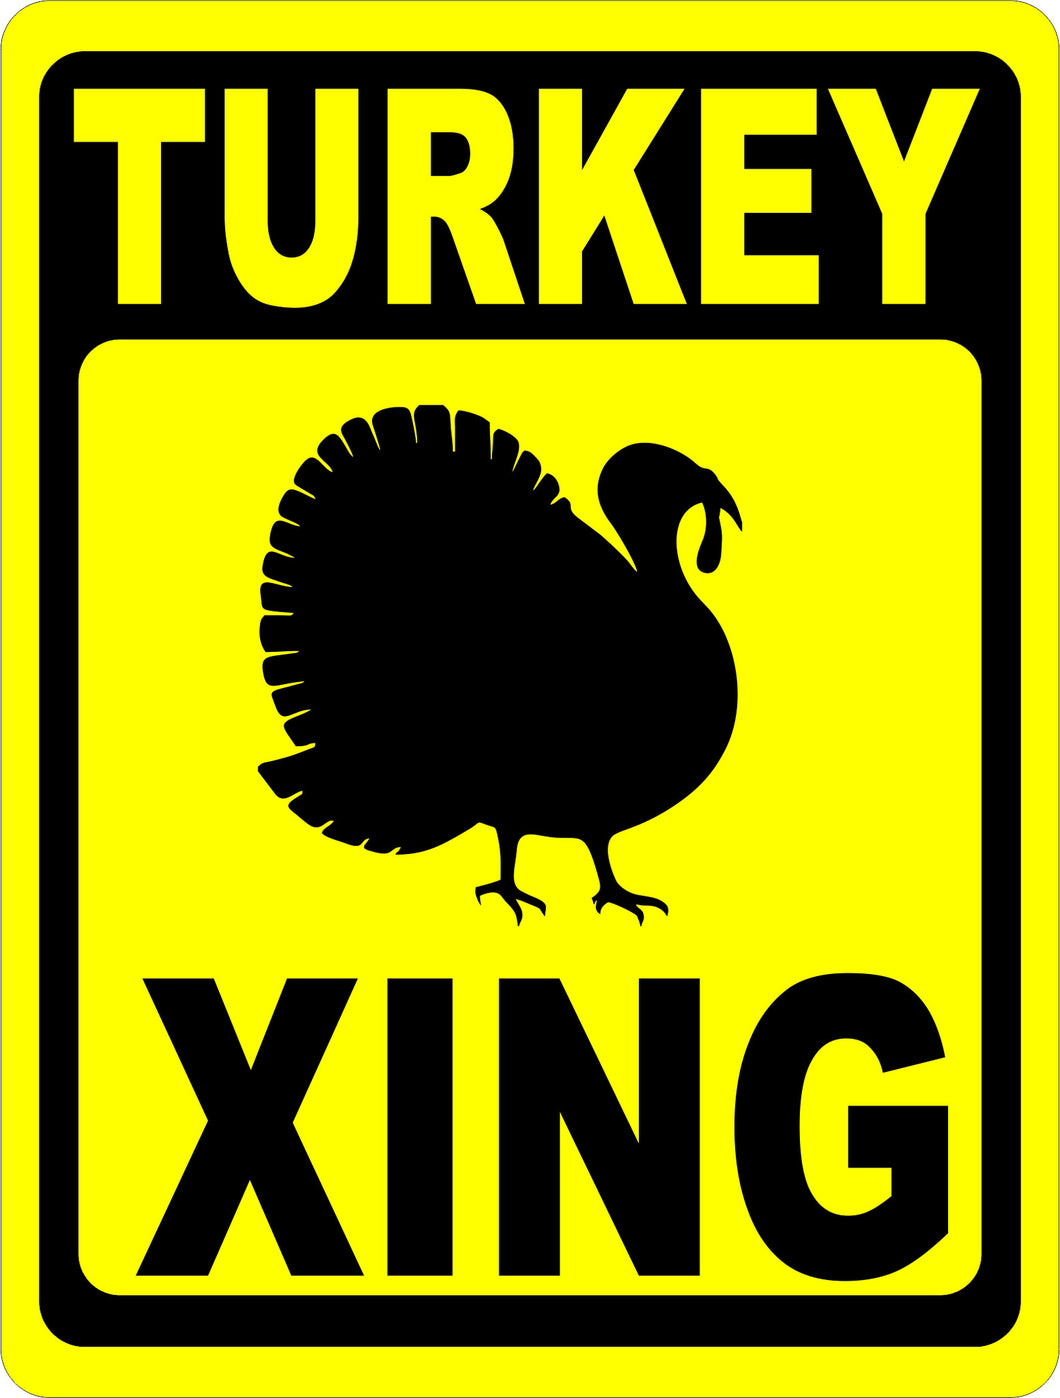 Turkey Xing Sign